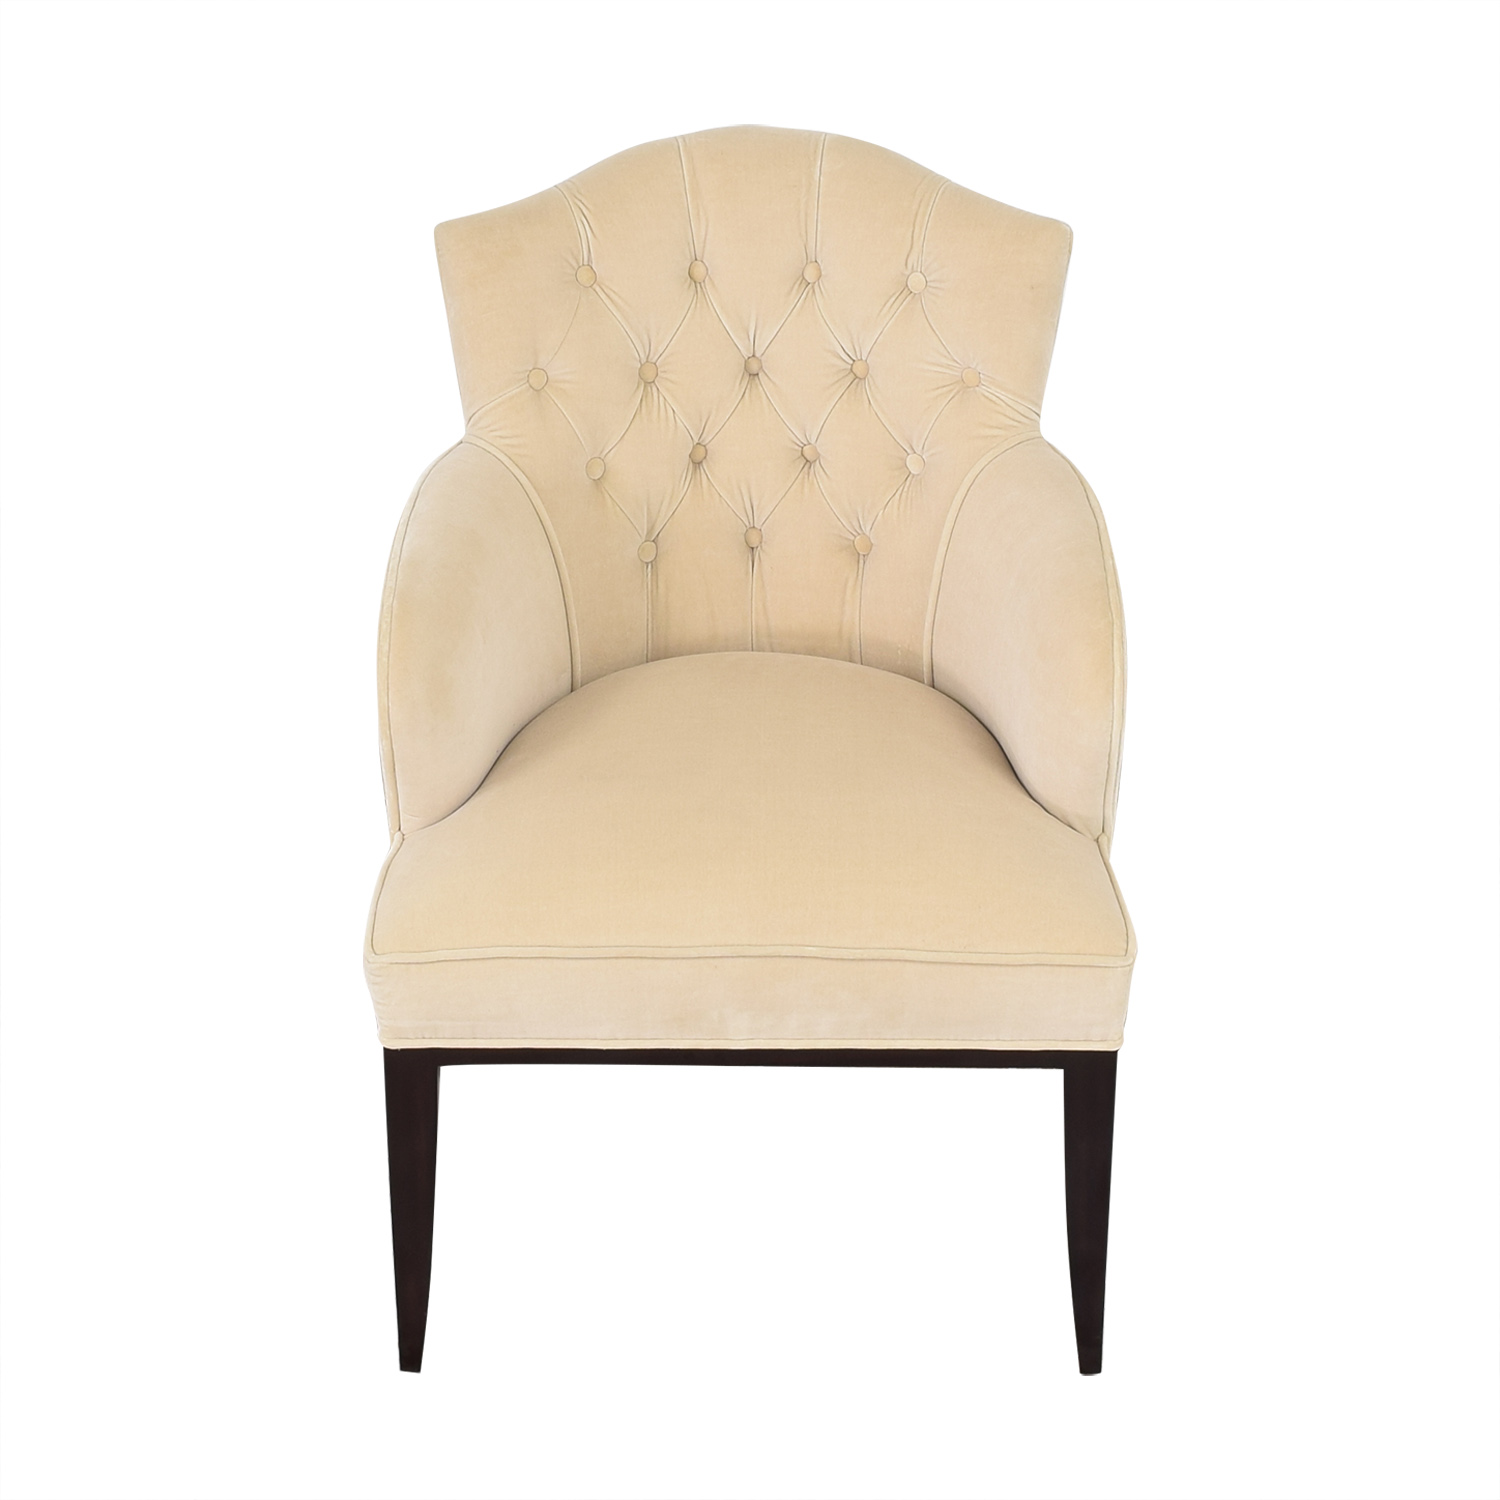 shop Christopher Guy Christopher Guy Monaco Chair online